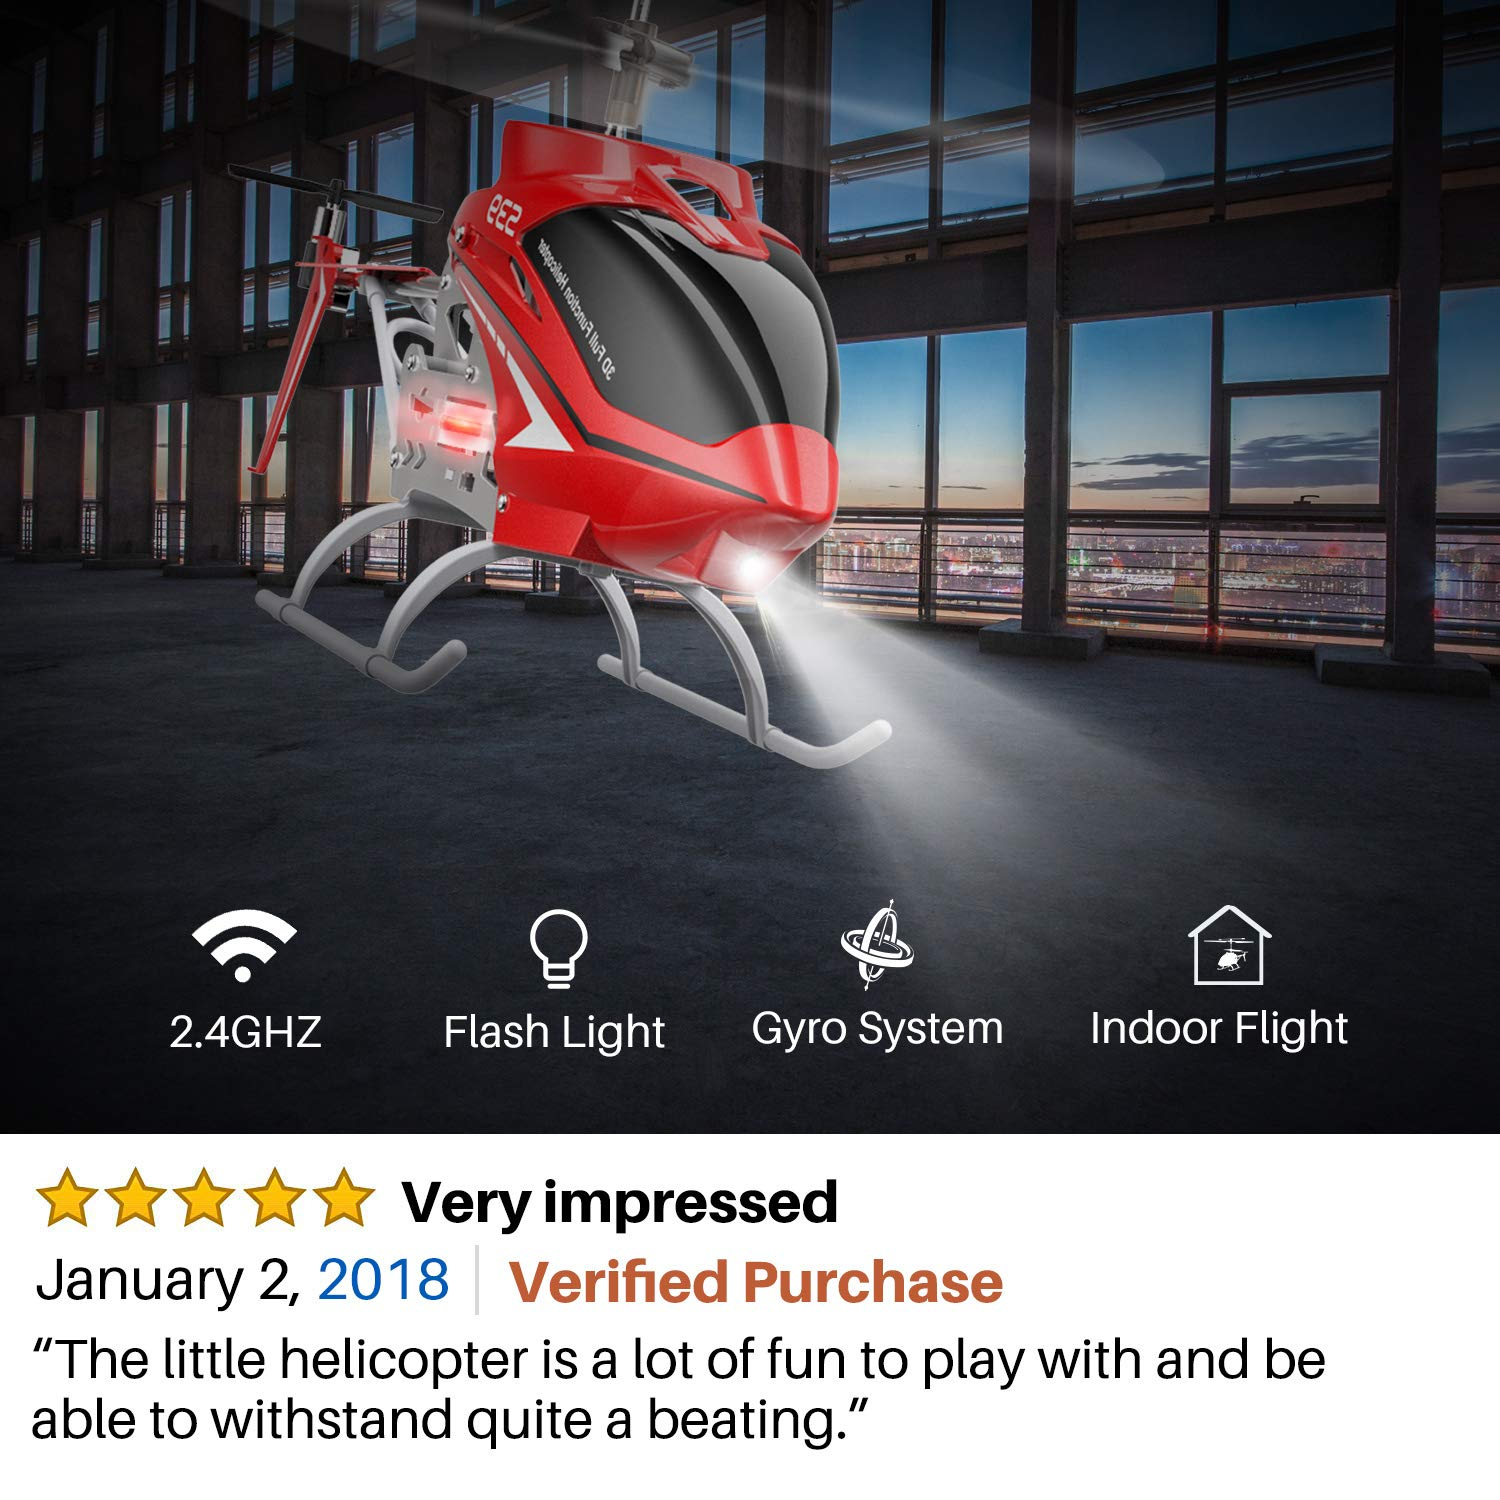 SYMA RC Helicopter, S39 Aircraft with 3.5 Channel,Bigger Size, Sturdy Alloy Material, Gyro Stabilizer and High &Low Speed, Multi-Protection Drone for Kids and Beginners to Play Indoor-Red by SYMA (Image #2)